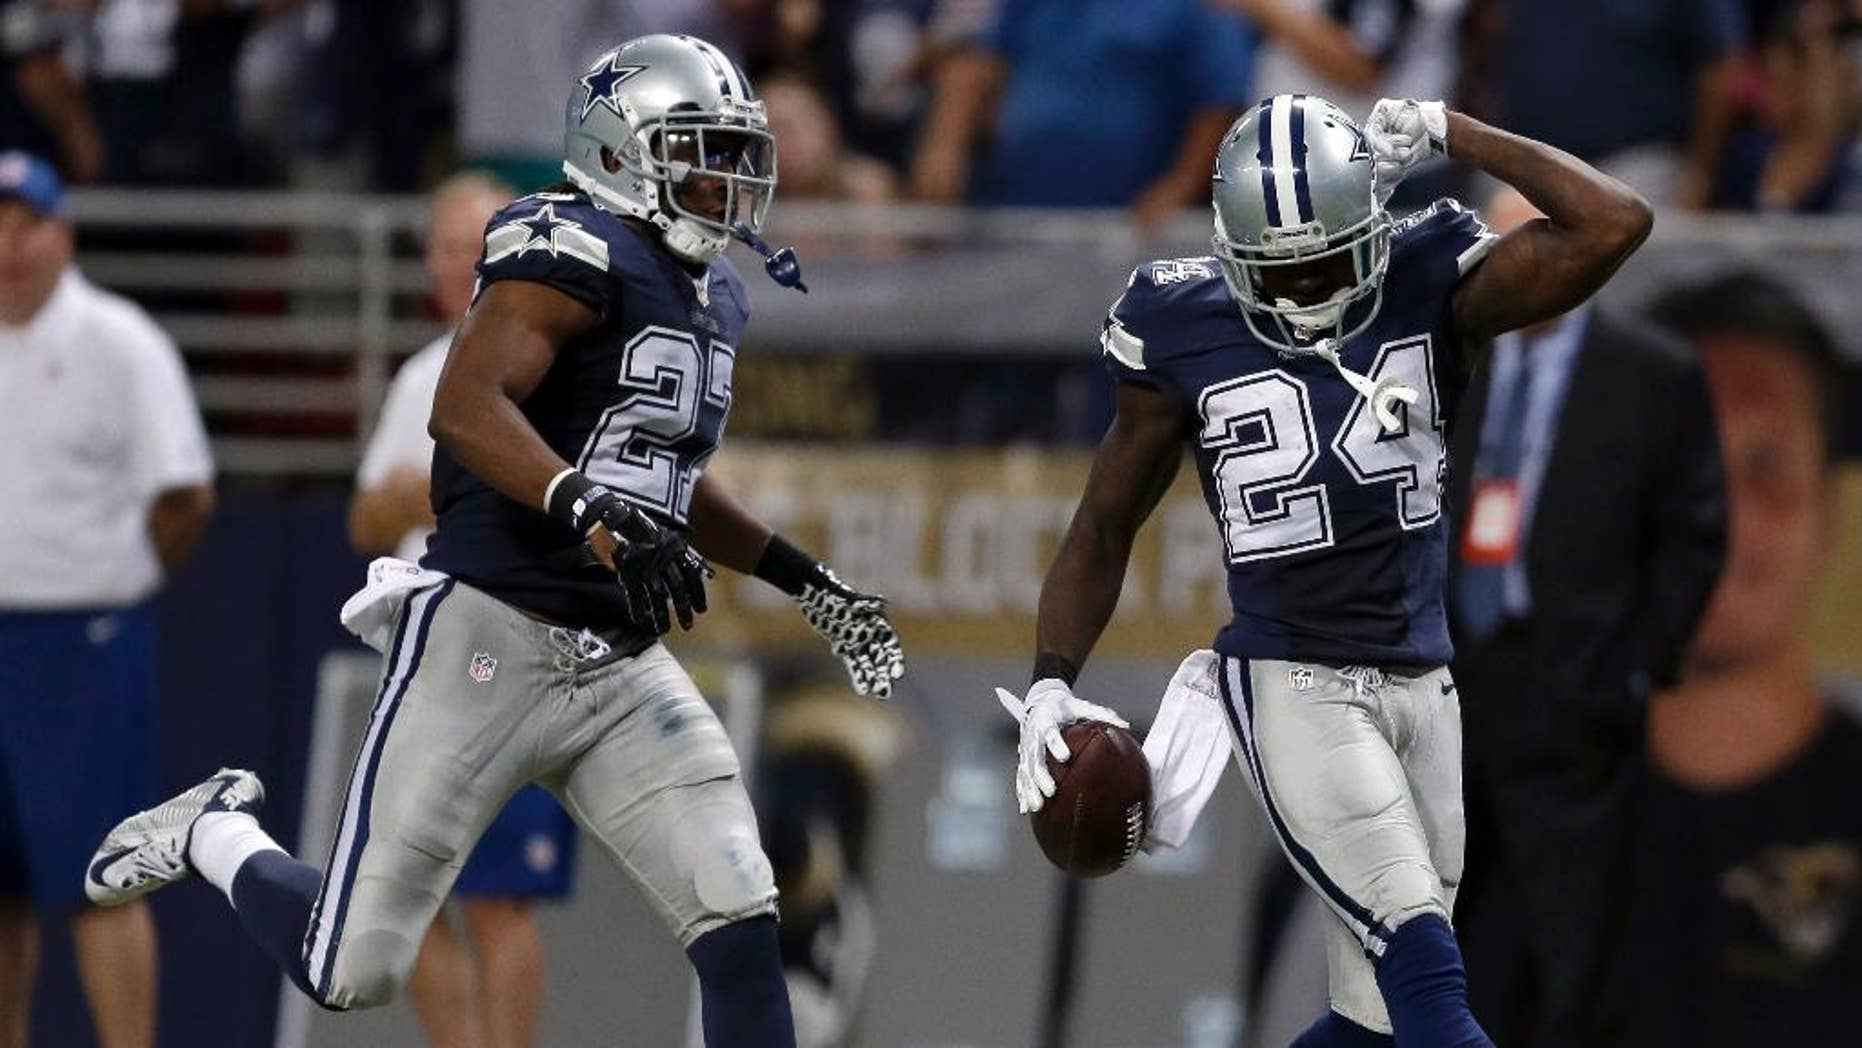 Dallas Cowboys cornerback Morris Claiborne, right, celebrates after intercepting a pass as teammate strong safety J.J. Wilcox watches during the fourth quarter of an NFL football game against the St. Louis Rams, Sunday, Sept. 21, 2014, in St. Louis. The Cowboys won 34-31. (AP Photo/Jeff Roberson)